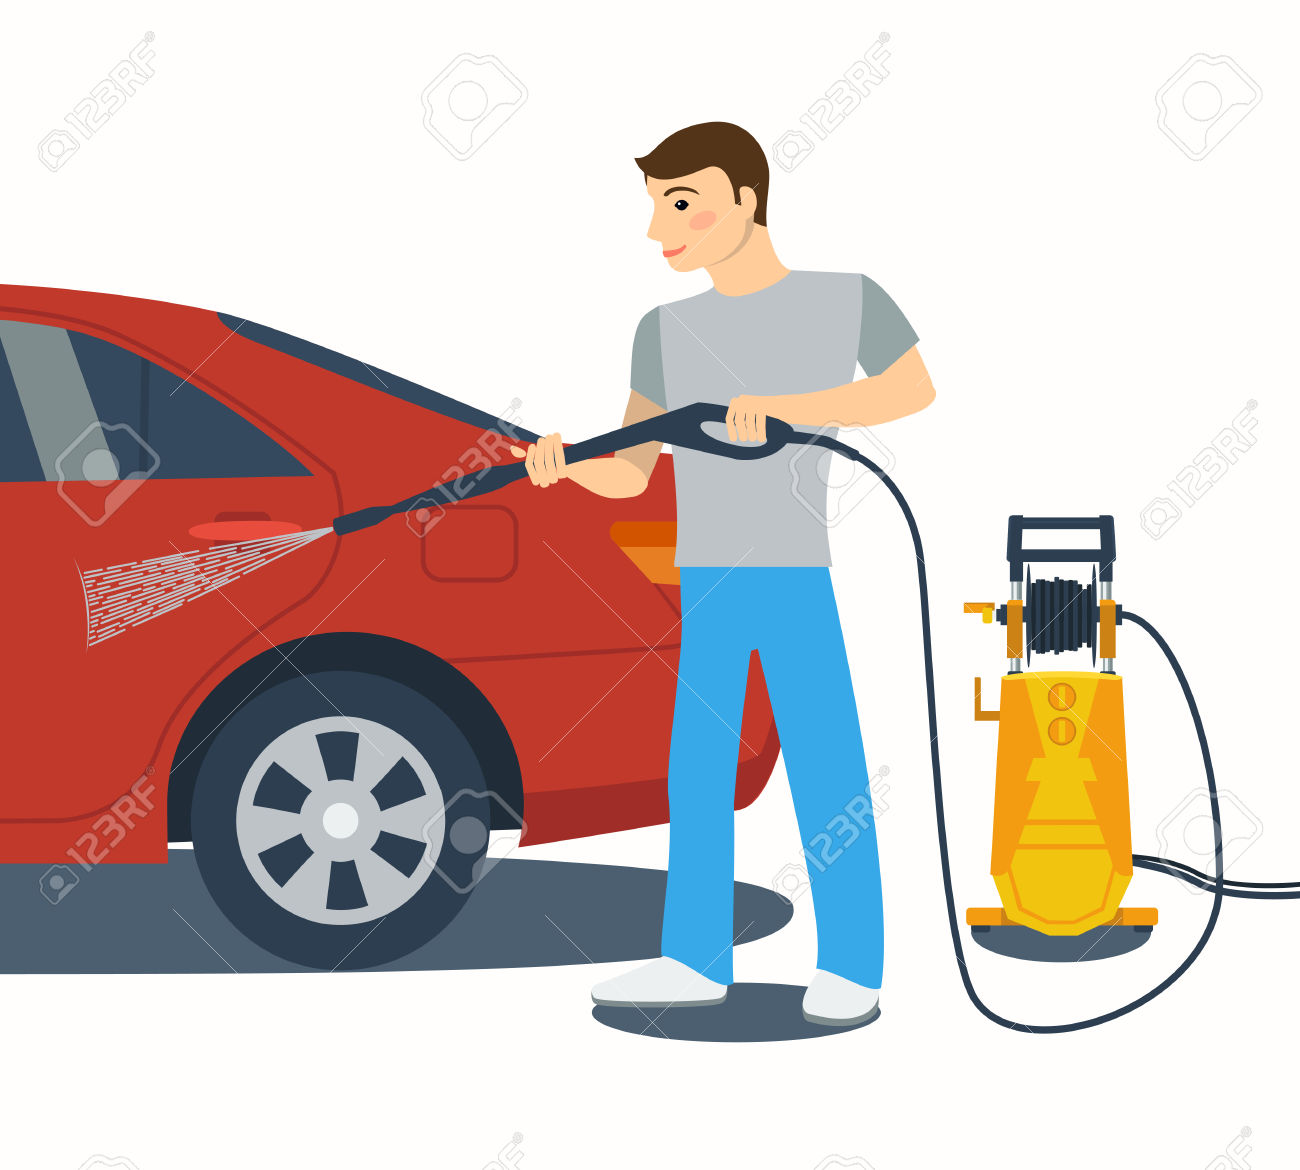 1300x1170 Cleaning Car Using High Pressure Water Car Wash Clipart, Explore